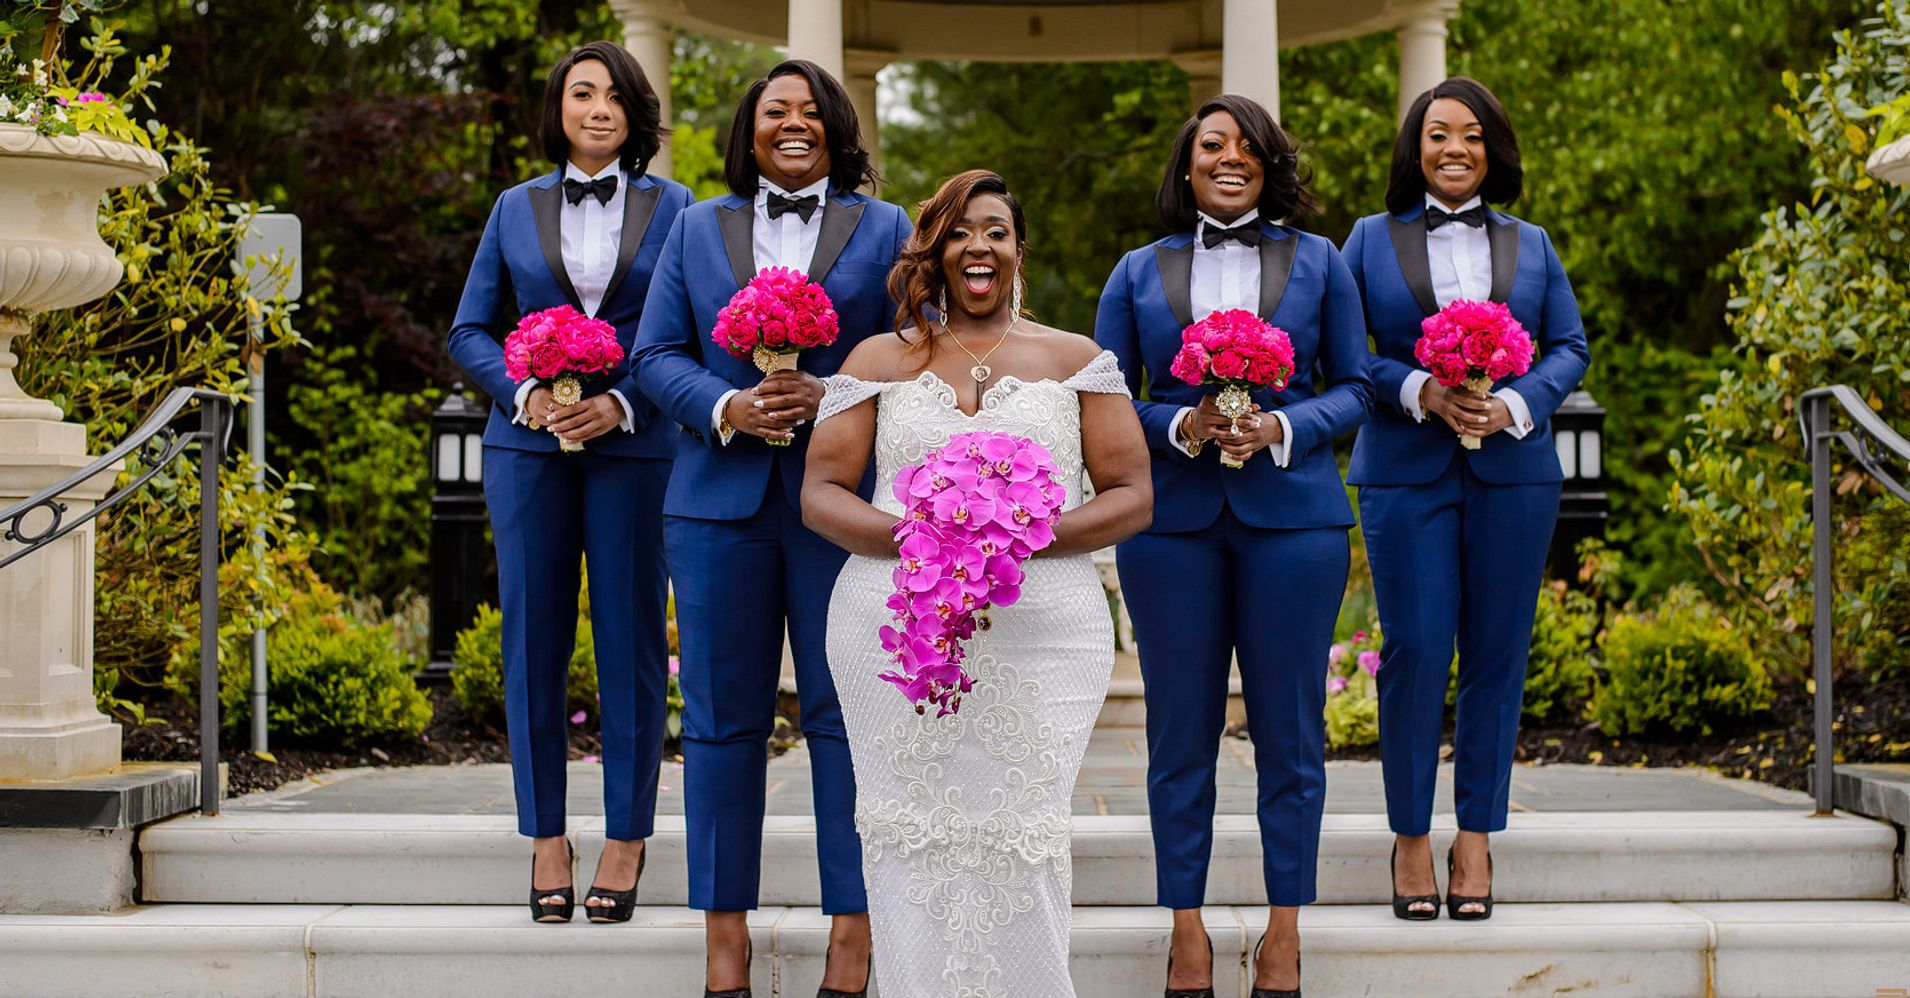 19b0bd3419 14 Photos Of Bridesmaids Rocking Pants And Looking Chic As Hell ...